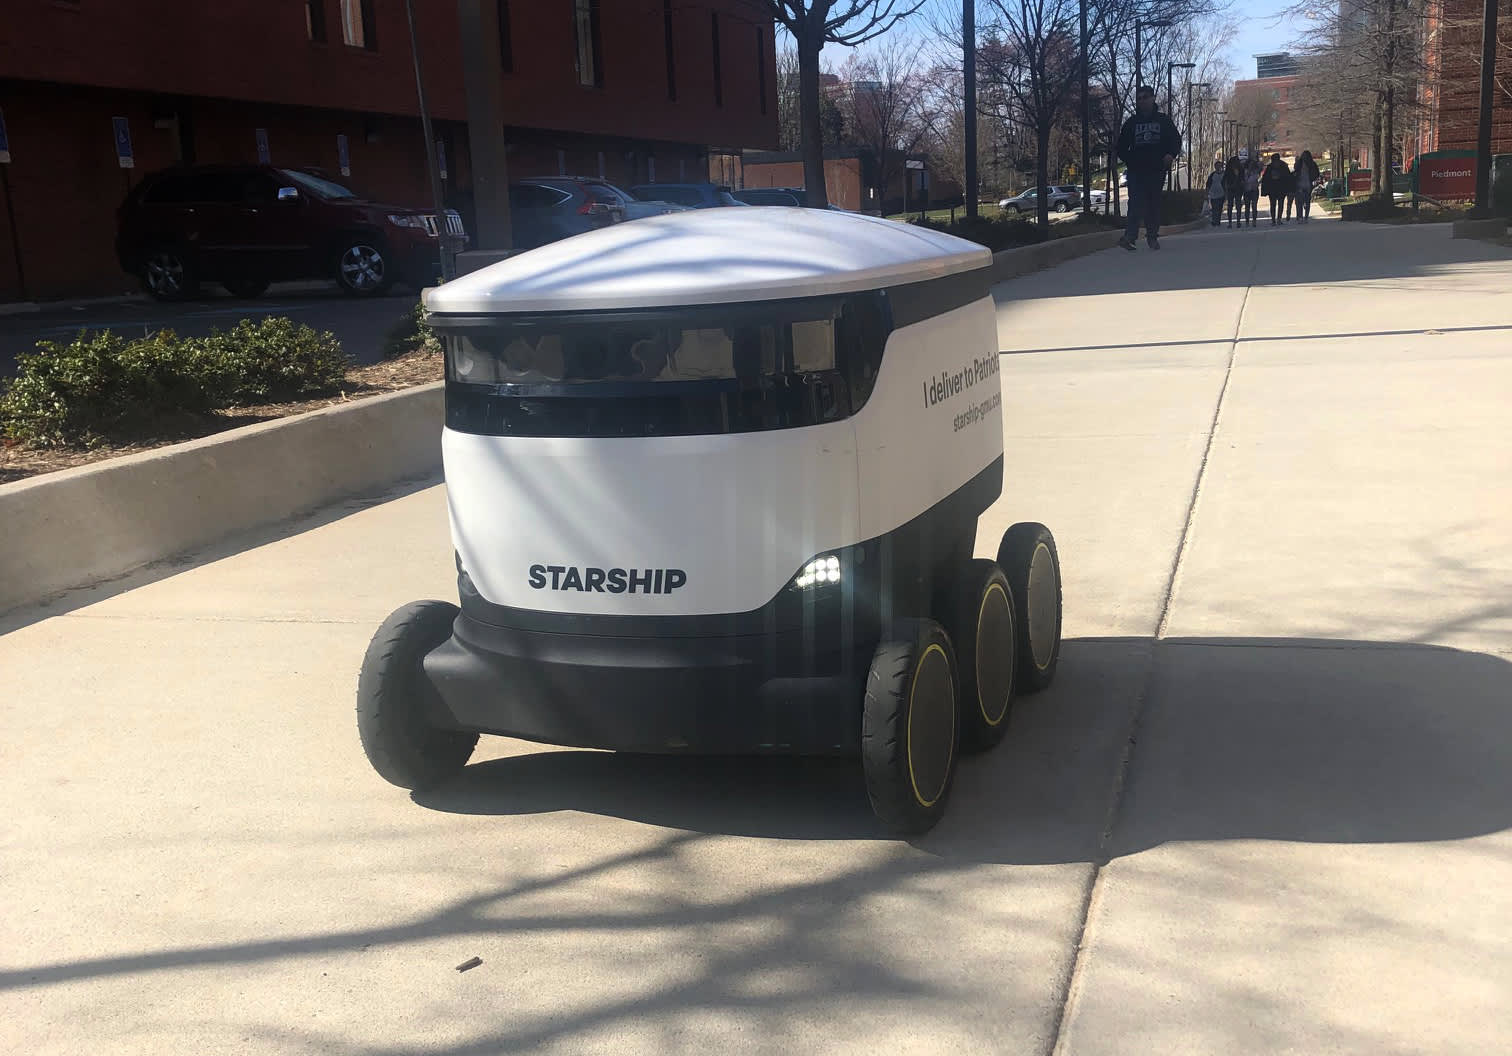 Robot food delivery may be coming to a campus near you